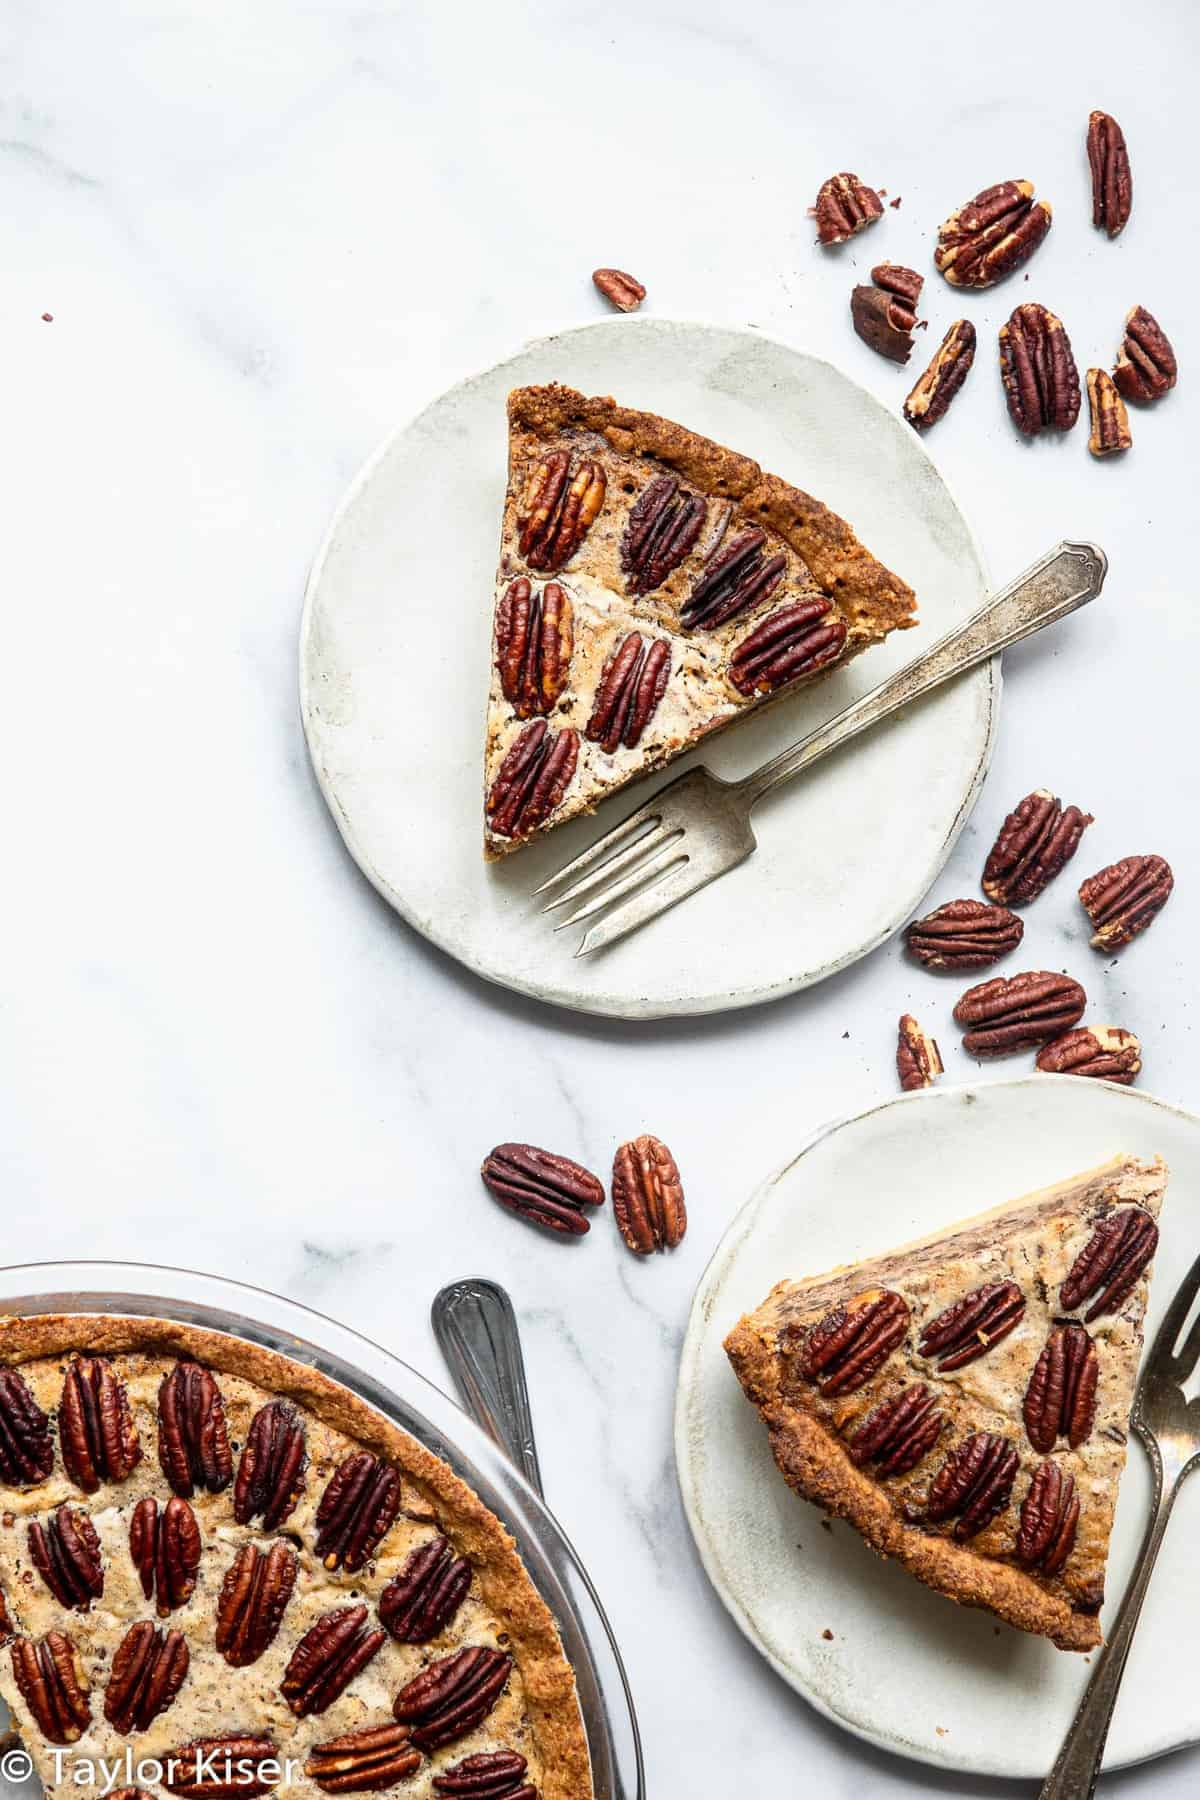 3 slices of sugar free pecan pie on plates